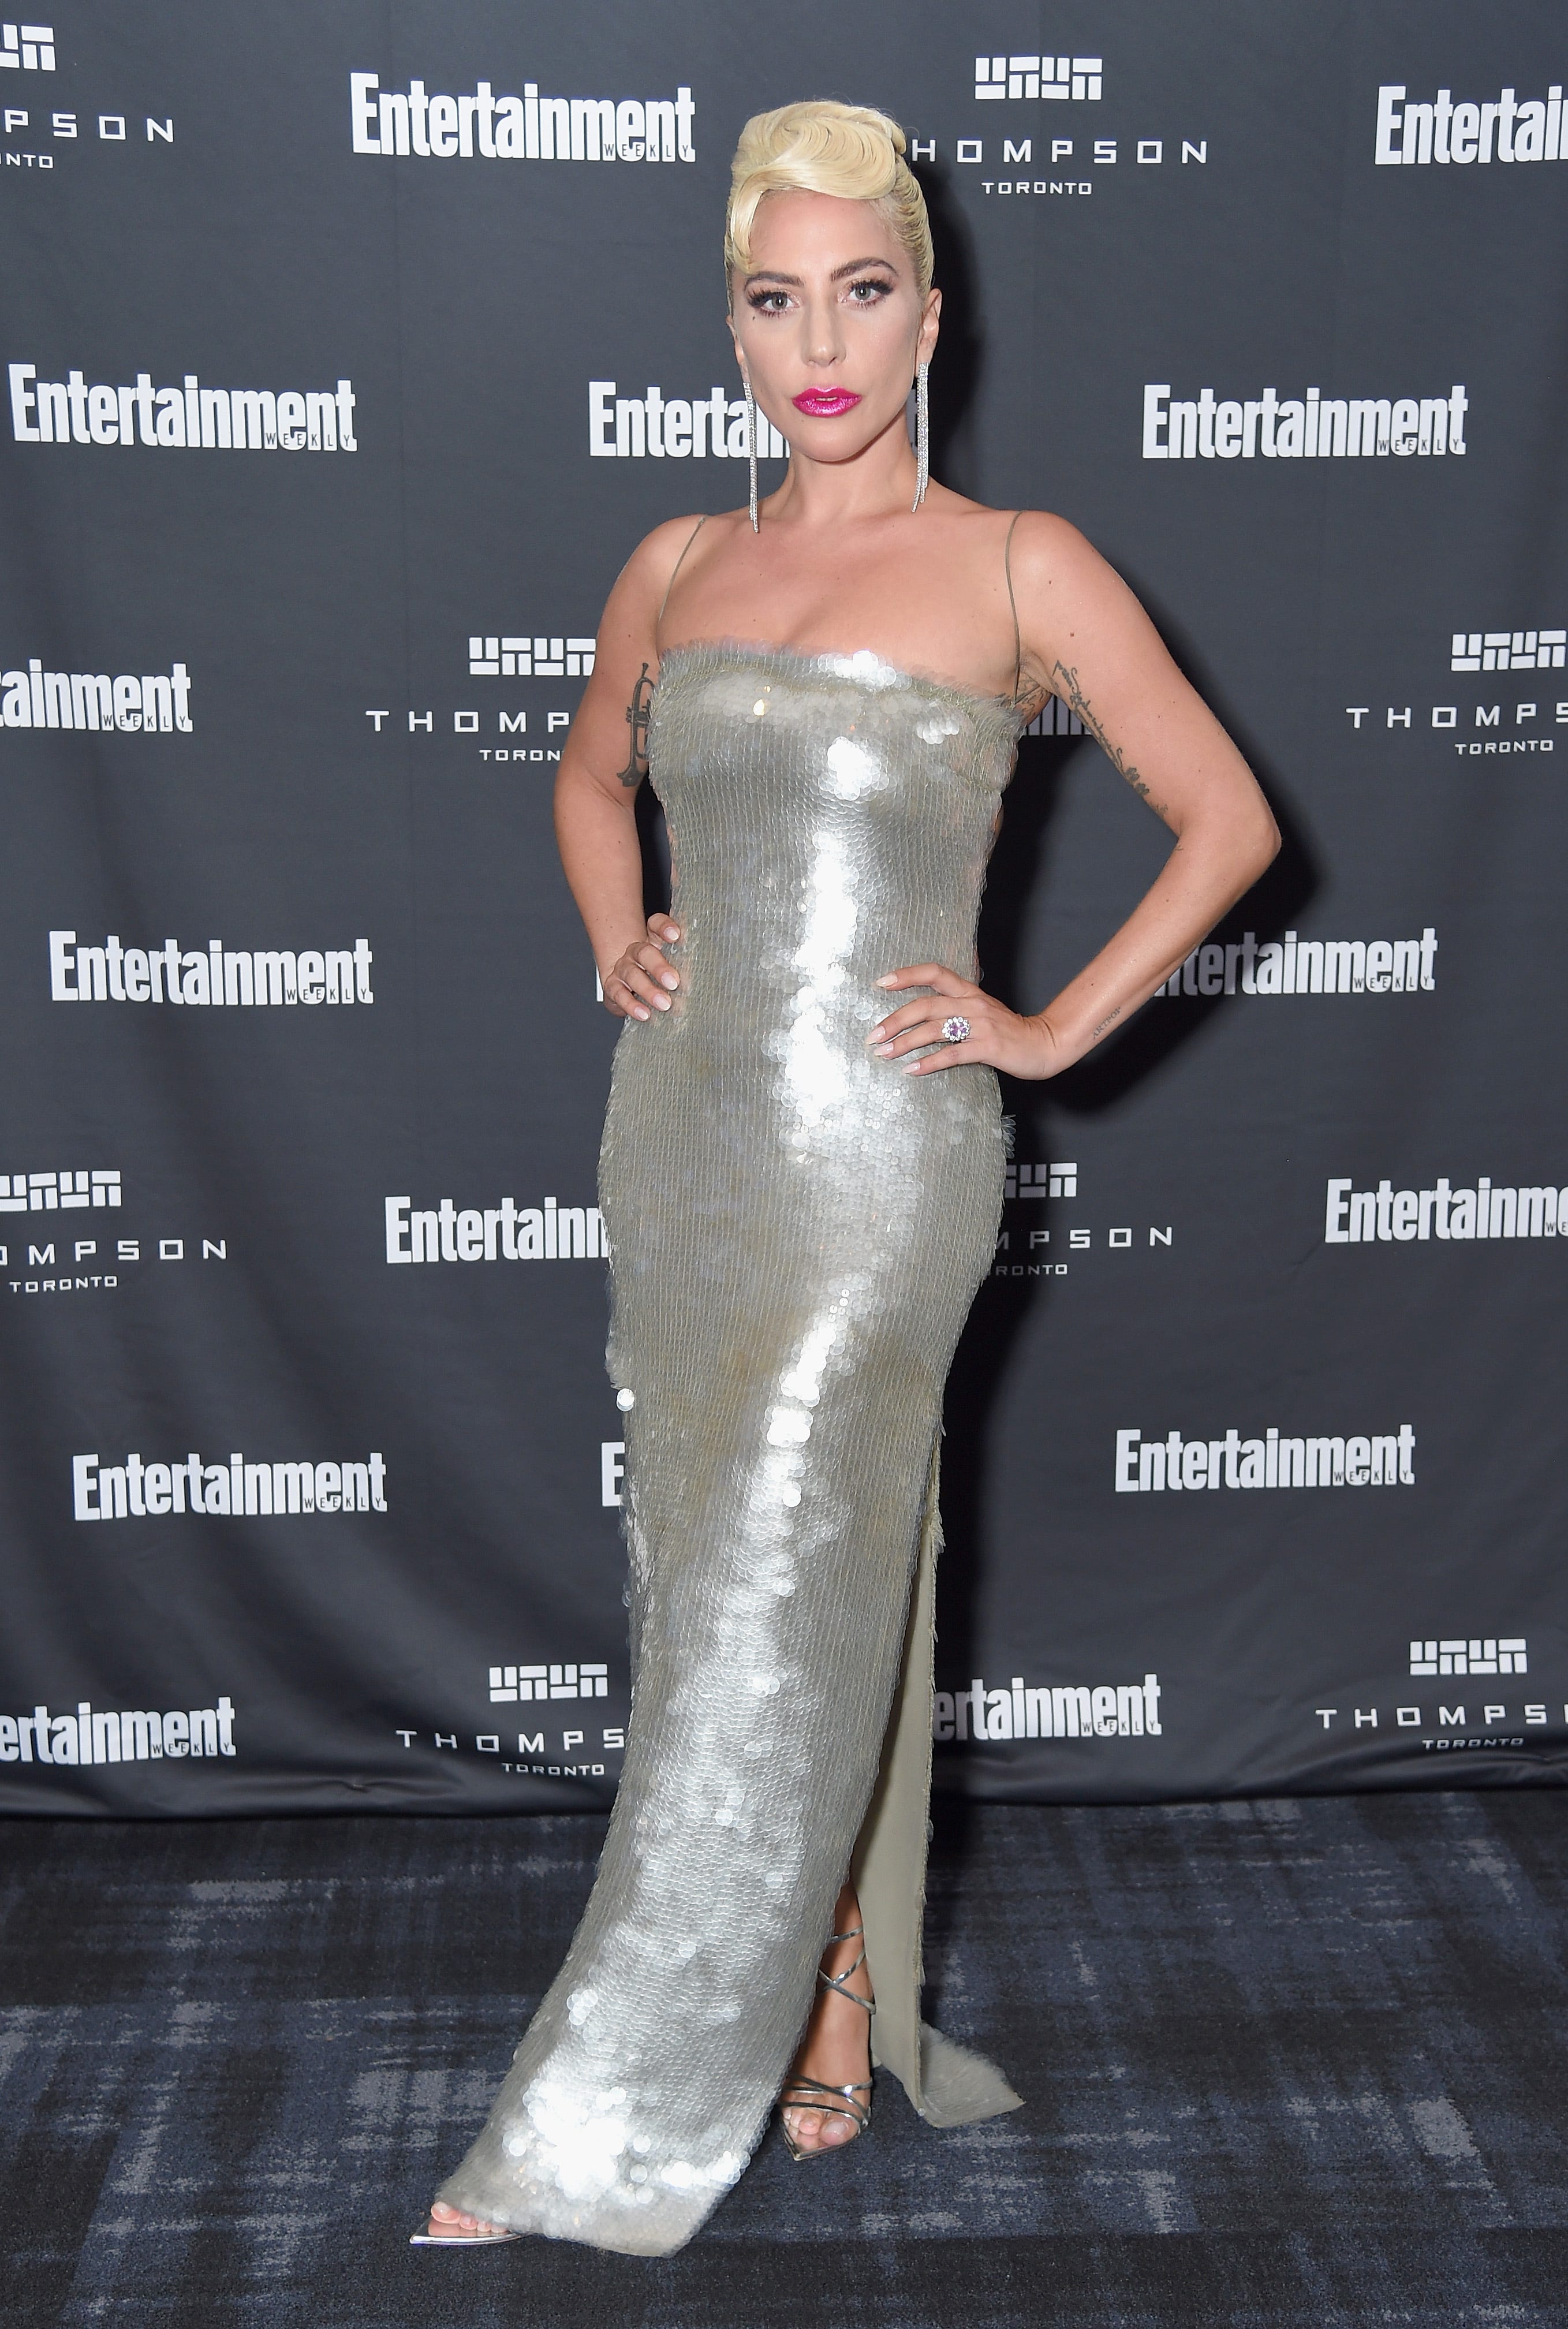 a5b56b7f84 http   www.usatoday.com picture-gallery life entertainthis 2013 07 12 ...